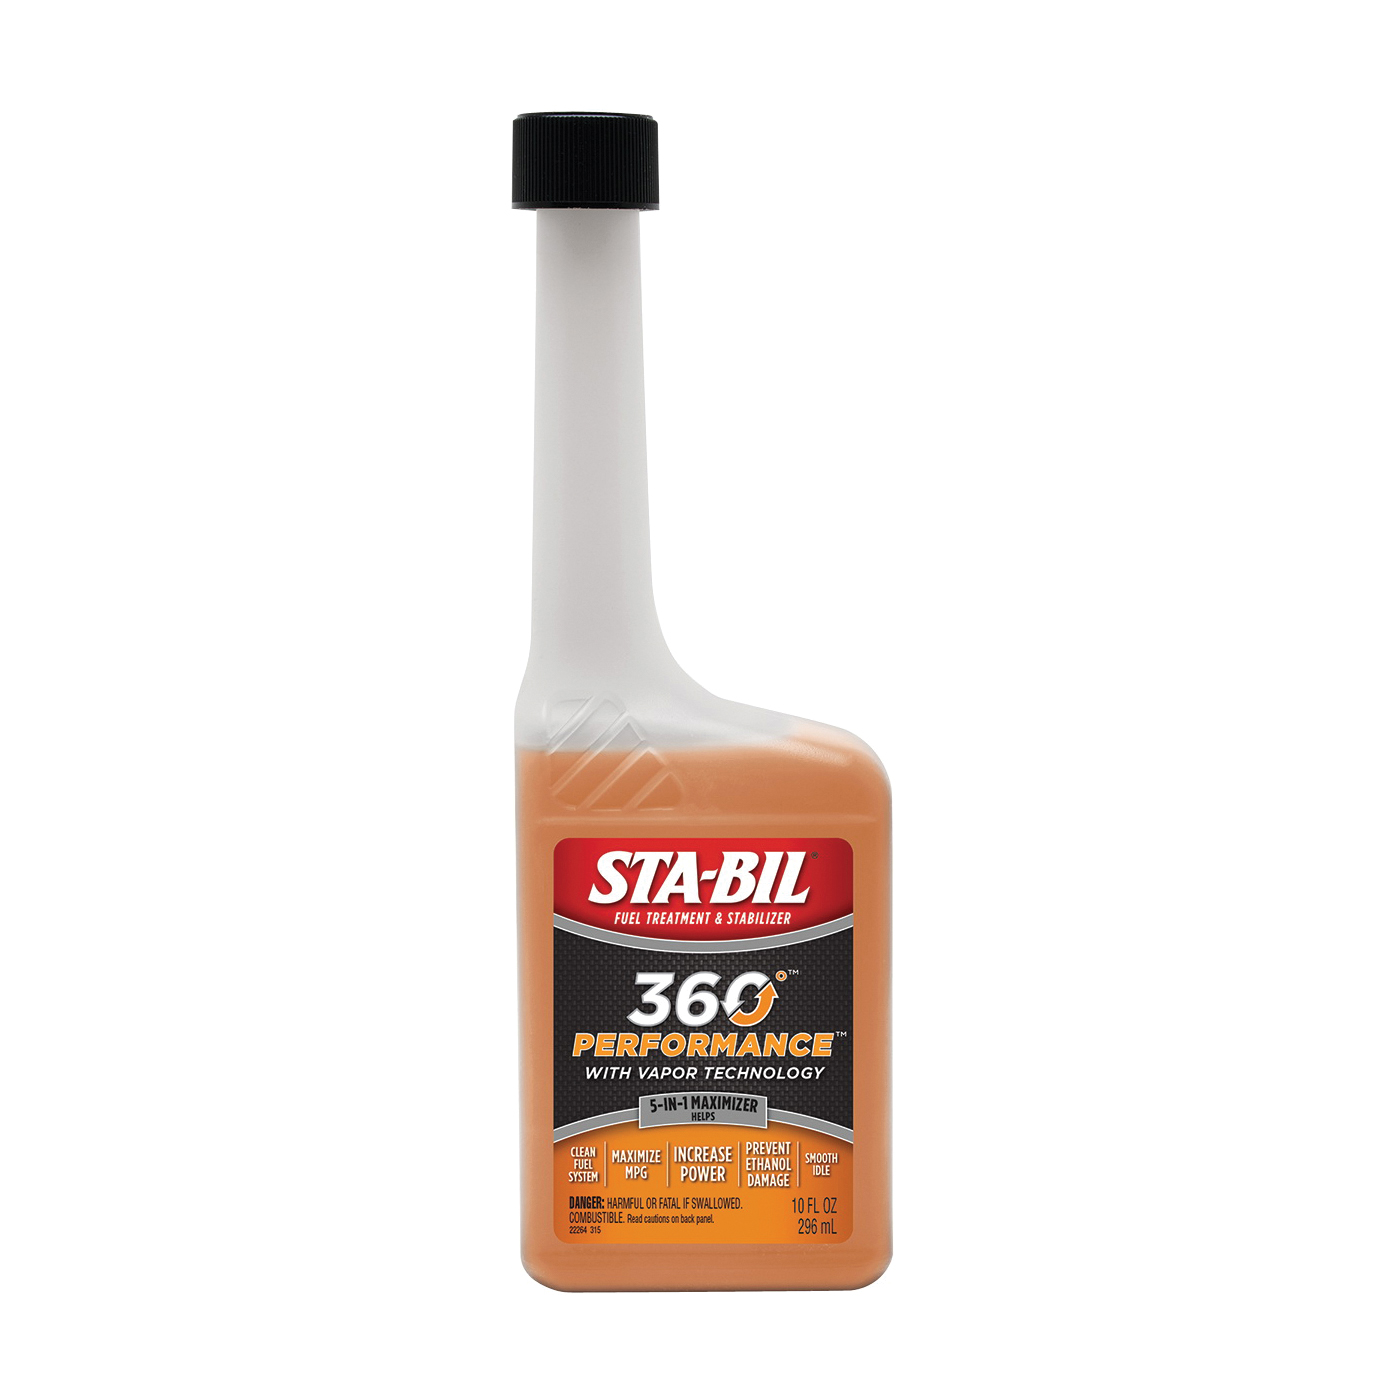 Picture of STA-BIL 360° Protection 22264 Fuel Treatment Amber/Brown, 10 oz Package, Bottle